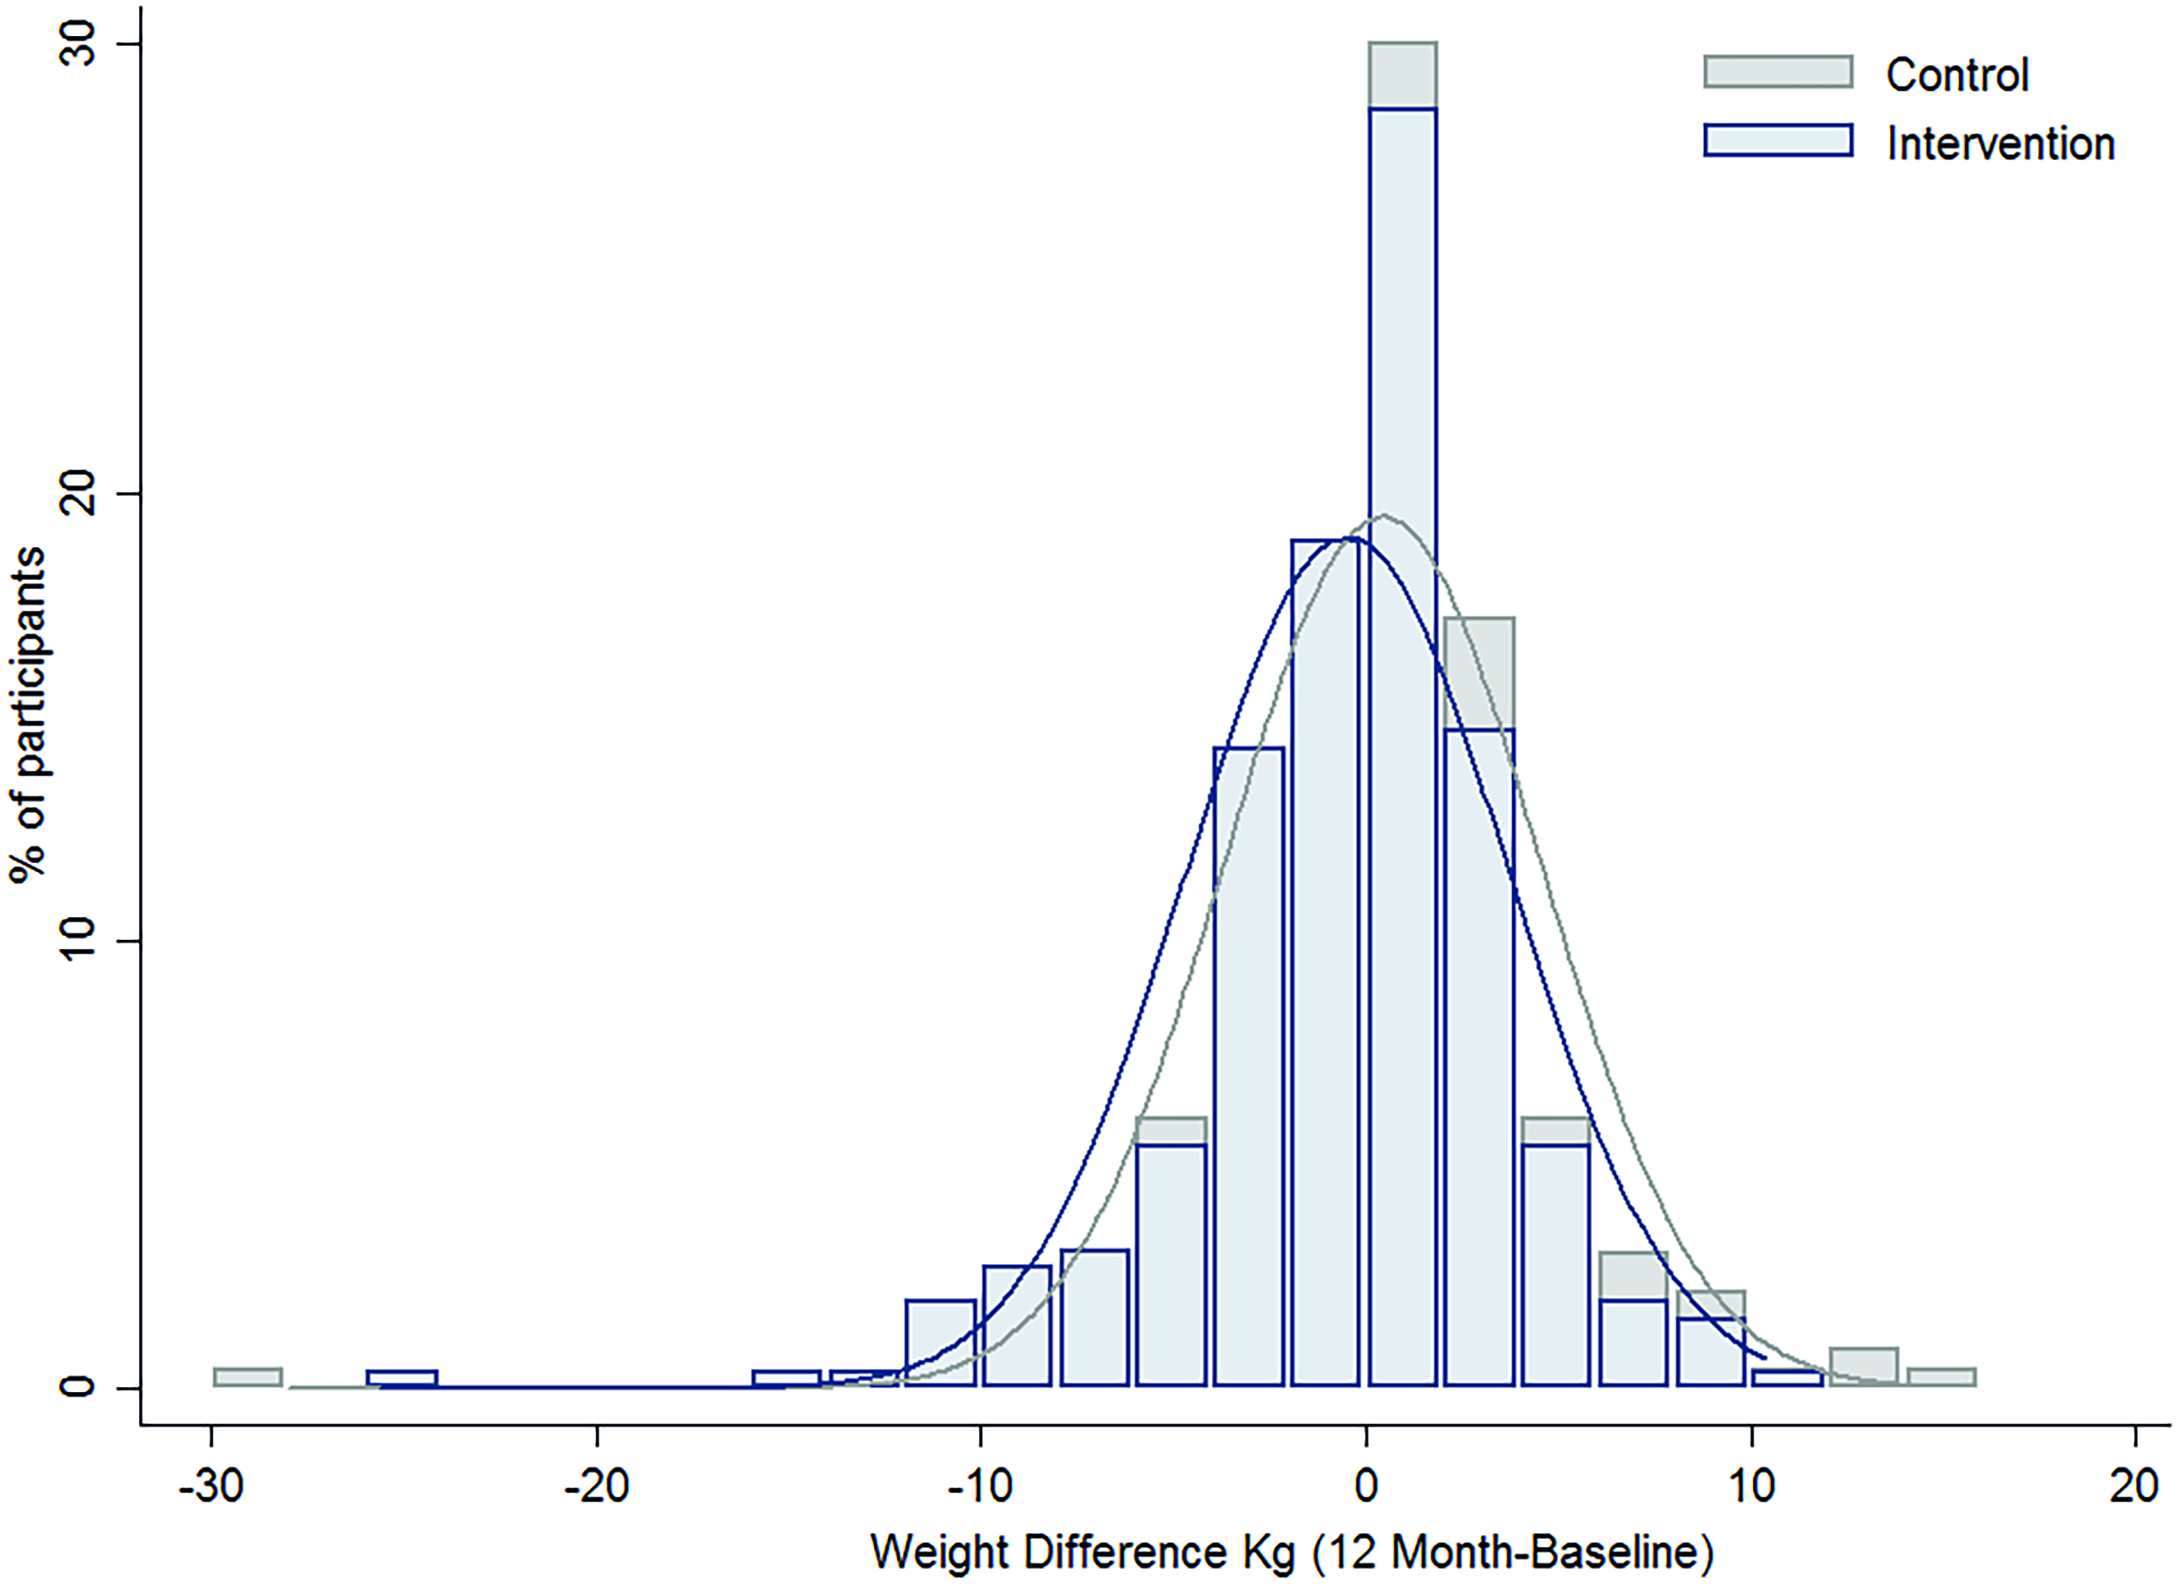 The difference in the distribution of weight gain over one year by intervention group.